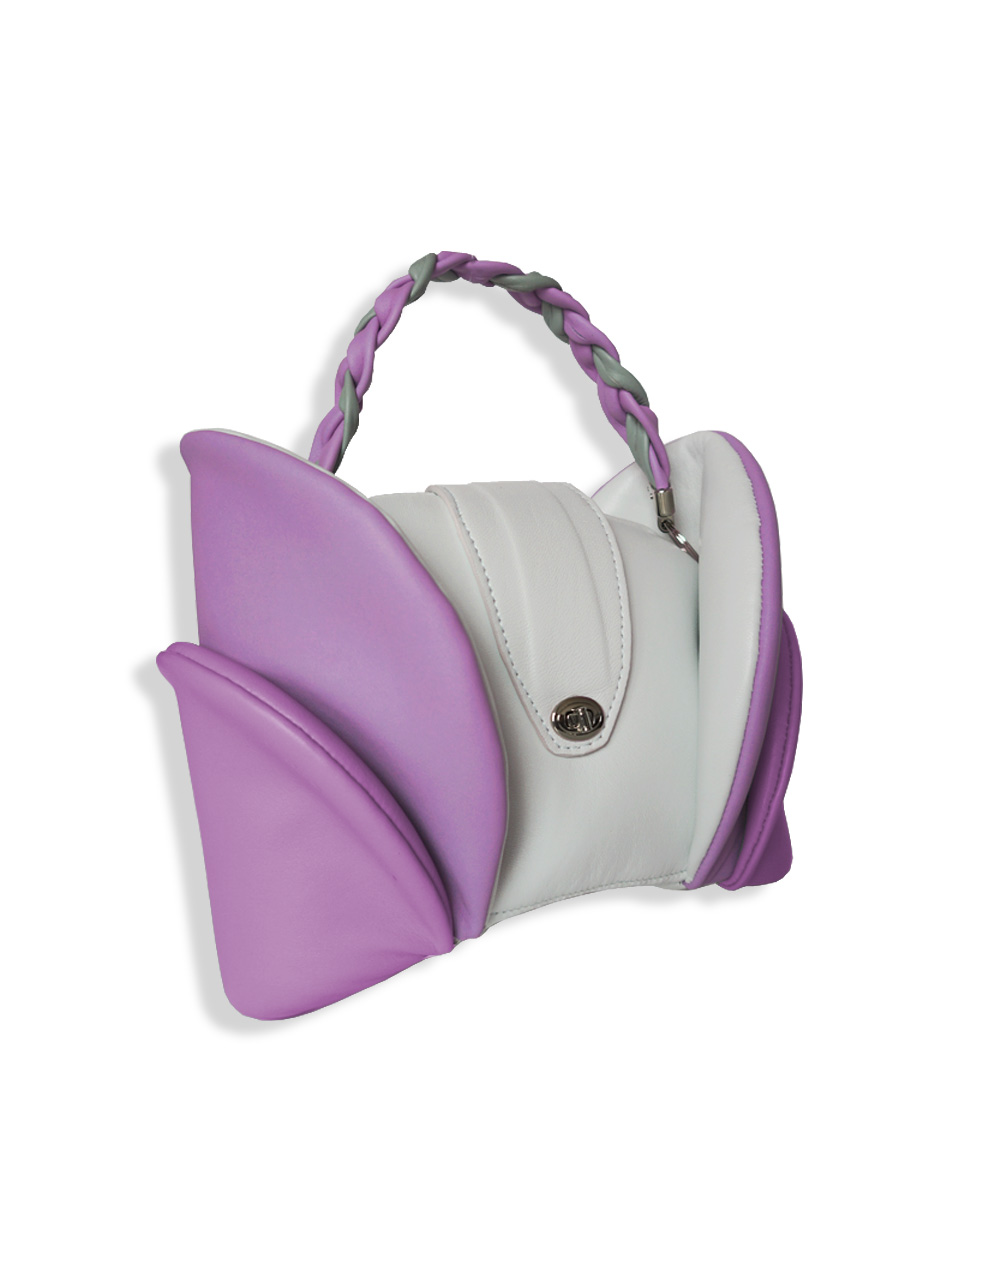 A small elegant and structured bag conveys the theme of nature and flowers. Made by hand, it using high-quality genuine leather and eco-friendly materials and designed for demanding customers.